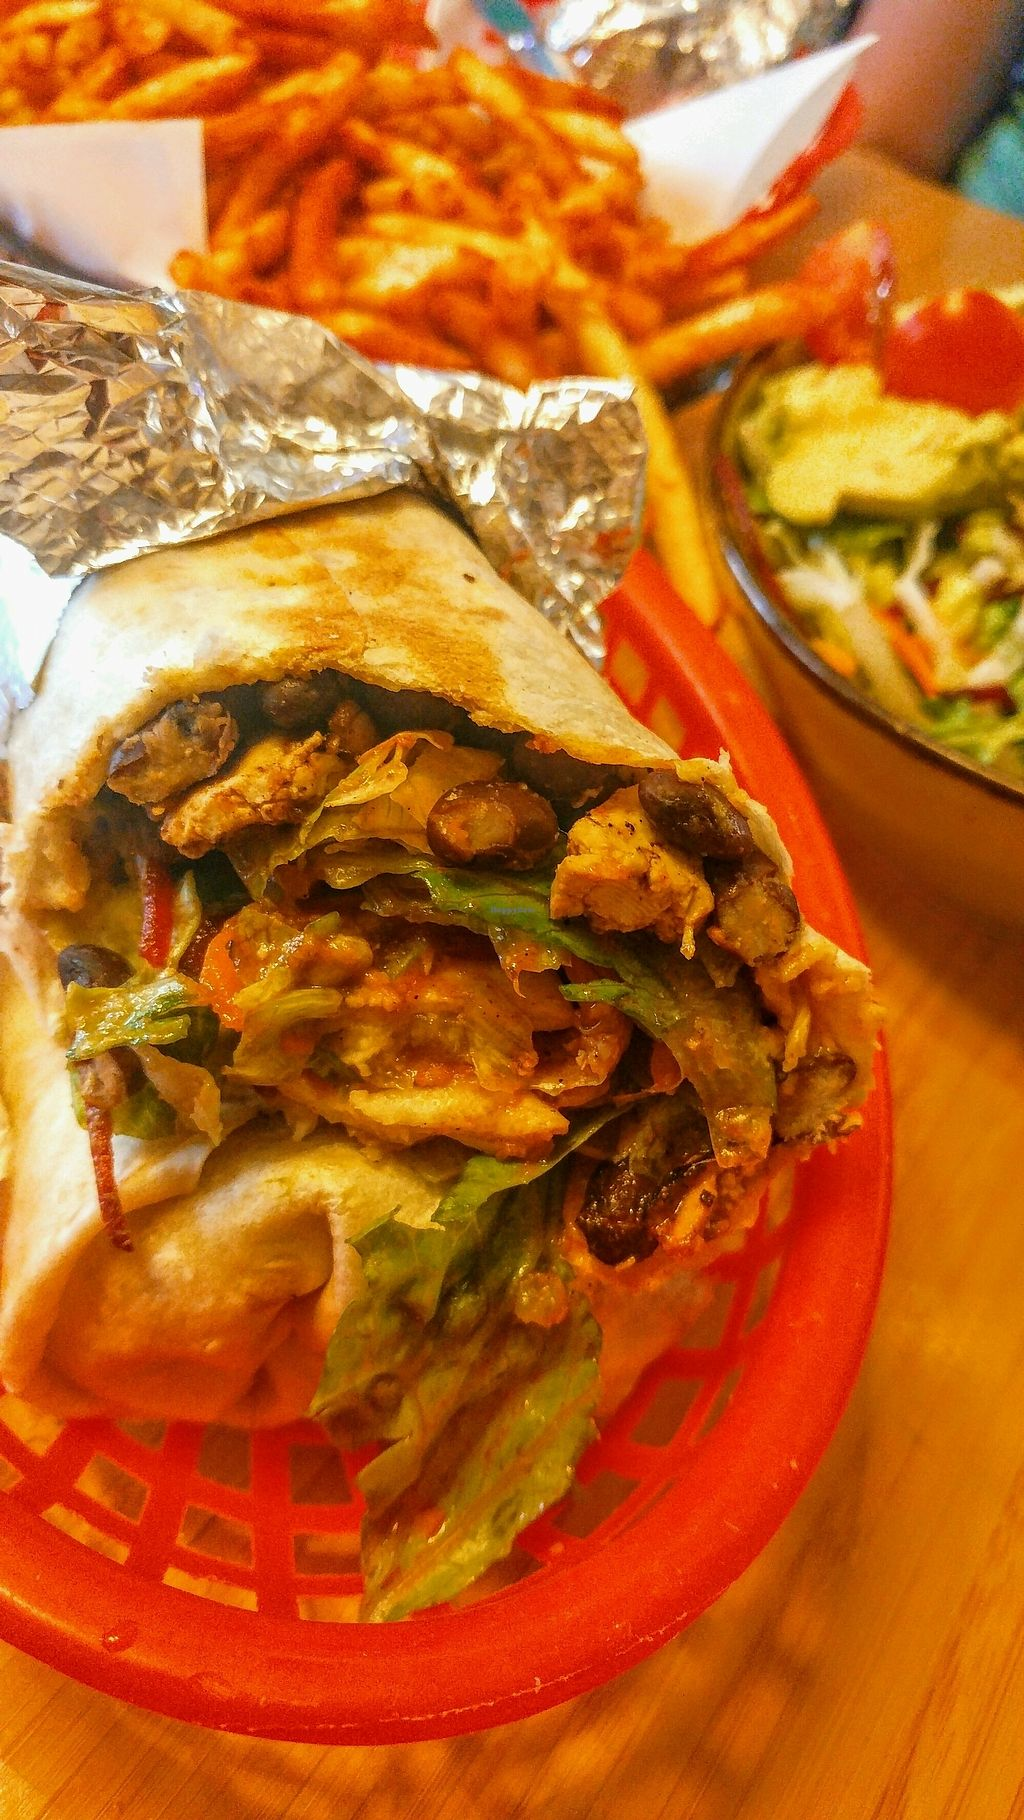 """Photo of Trippy Taco   by <a href=""""/members/profile/verbosity"""">verbosity</a> <br/>Mixed Burrito <br/> January 27, 2018  - <a href='/contact/abuse/image/69539/351362'>Report</a>"""